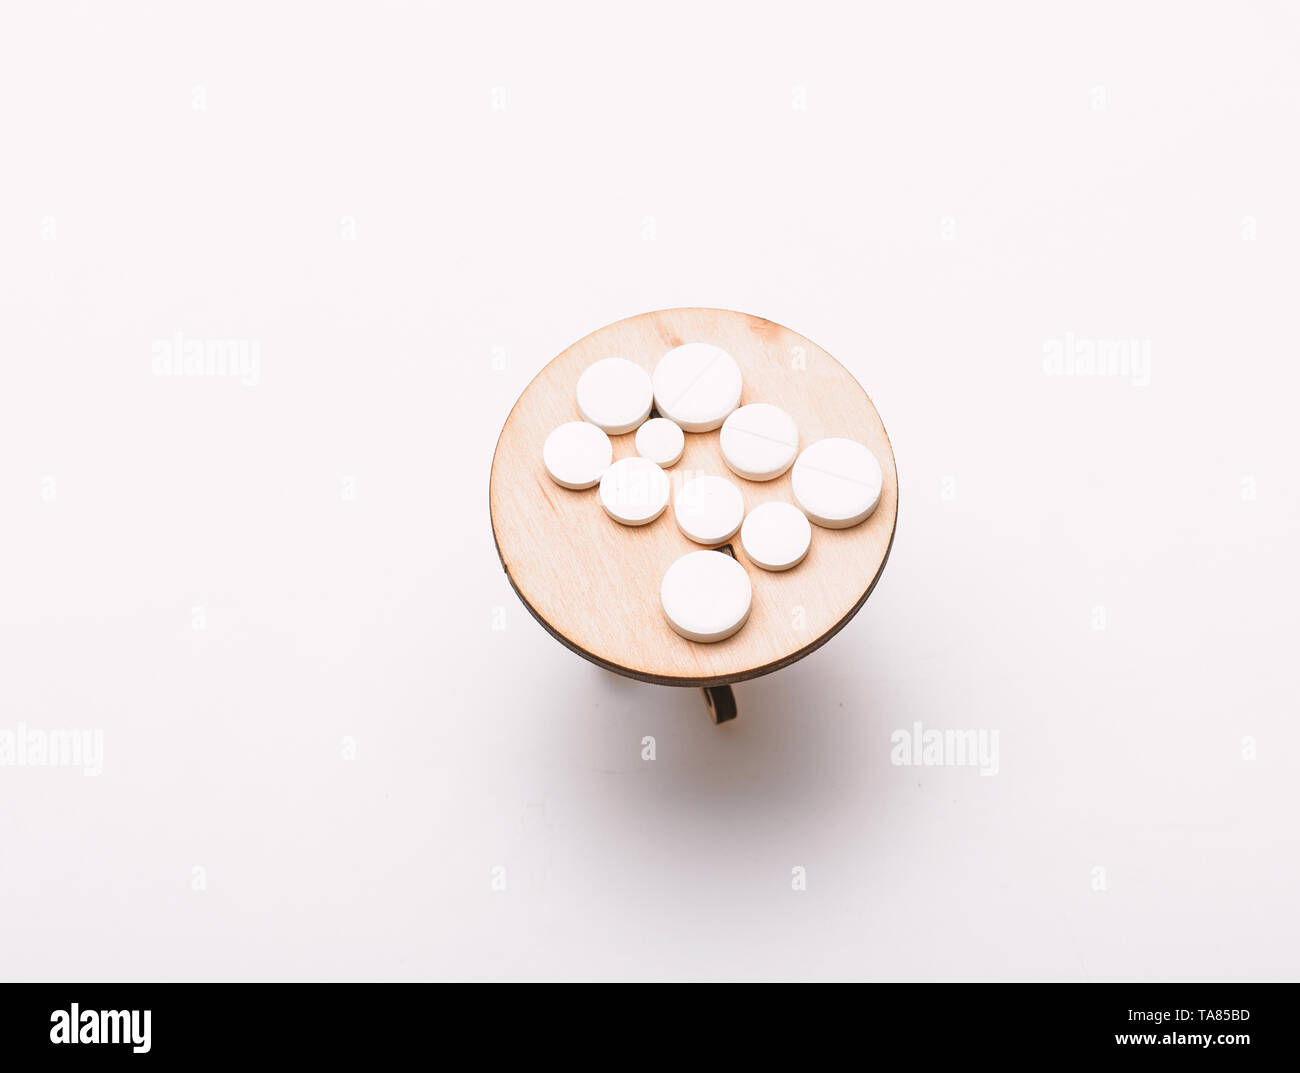 Medication regimen. Adherence to drug regimen. Tips tackling complex medication regimen. Take medicines after food. Health care and medical treatment. Vitamin supplements. Pills on tiny wooden table. - Stock Image